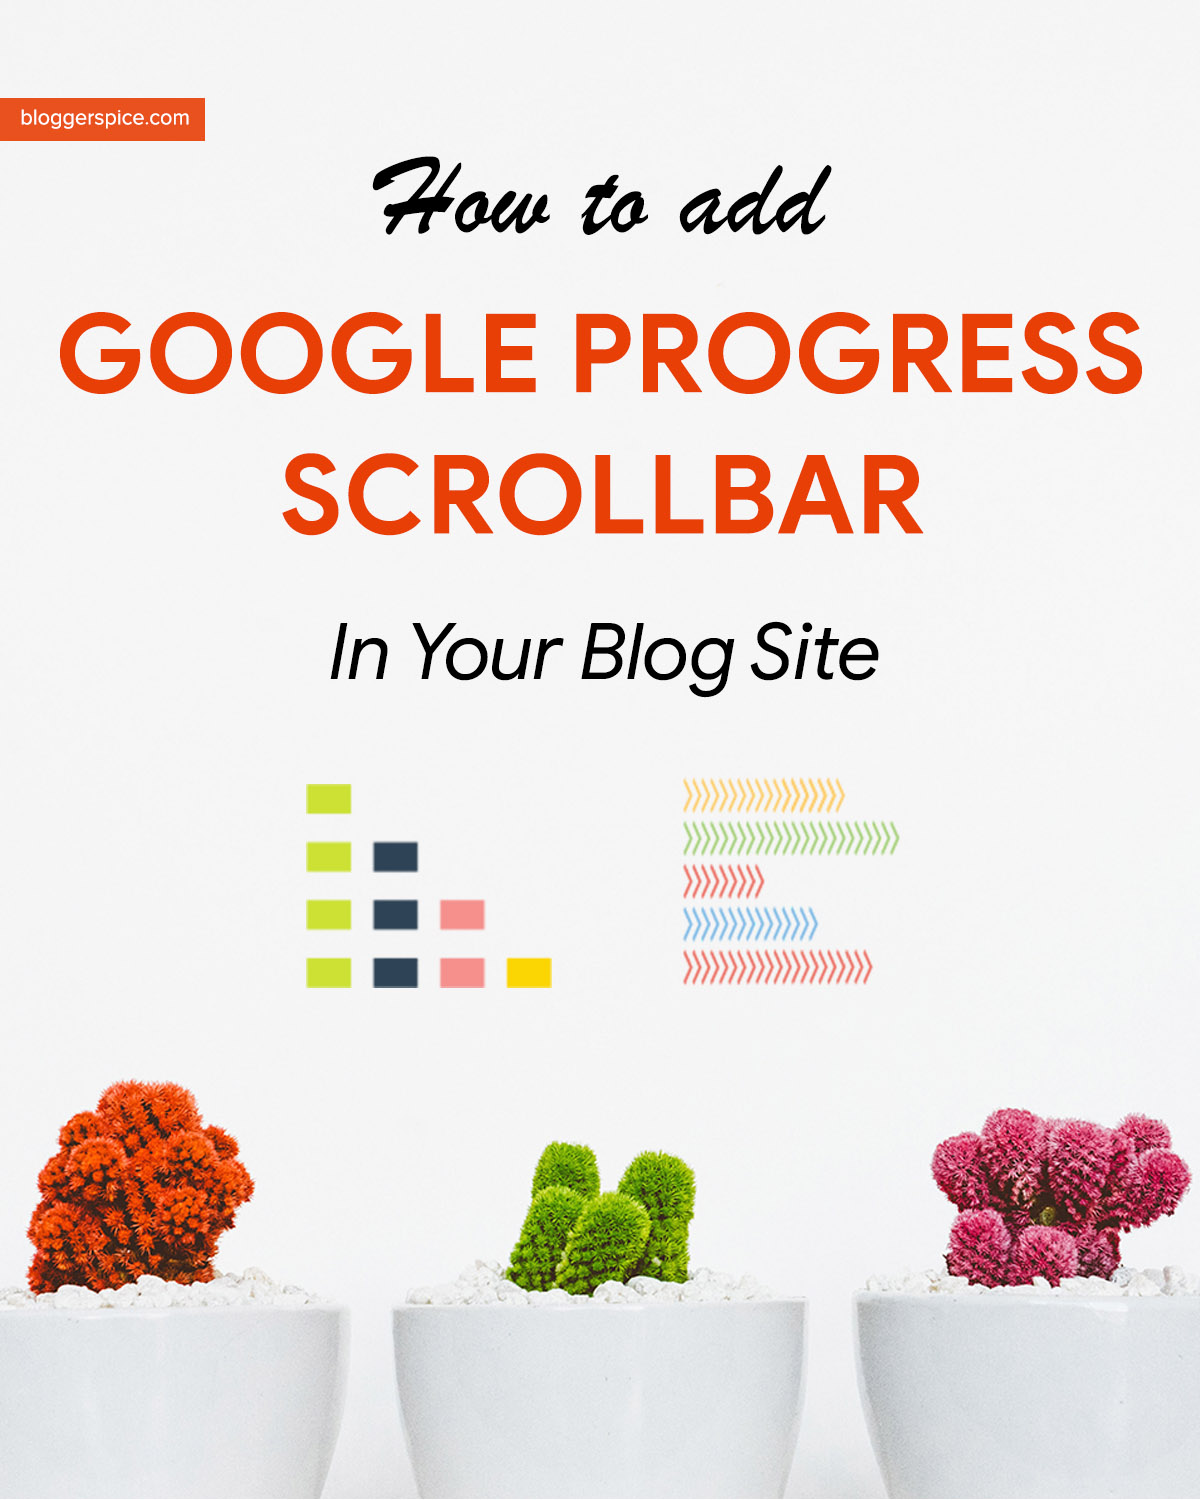 How to Install Progress Scrollbar on Blogger?